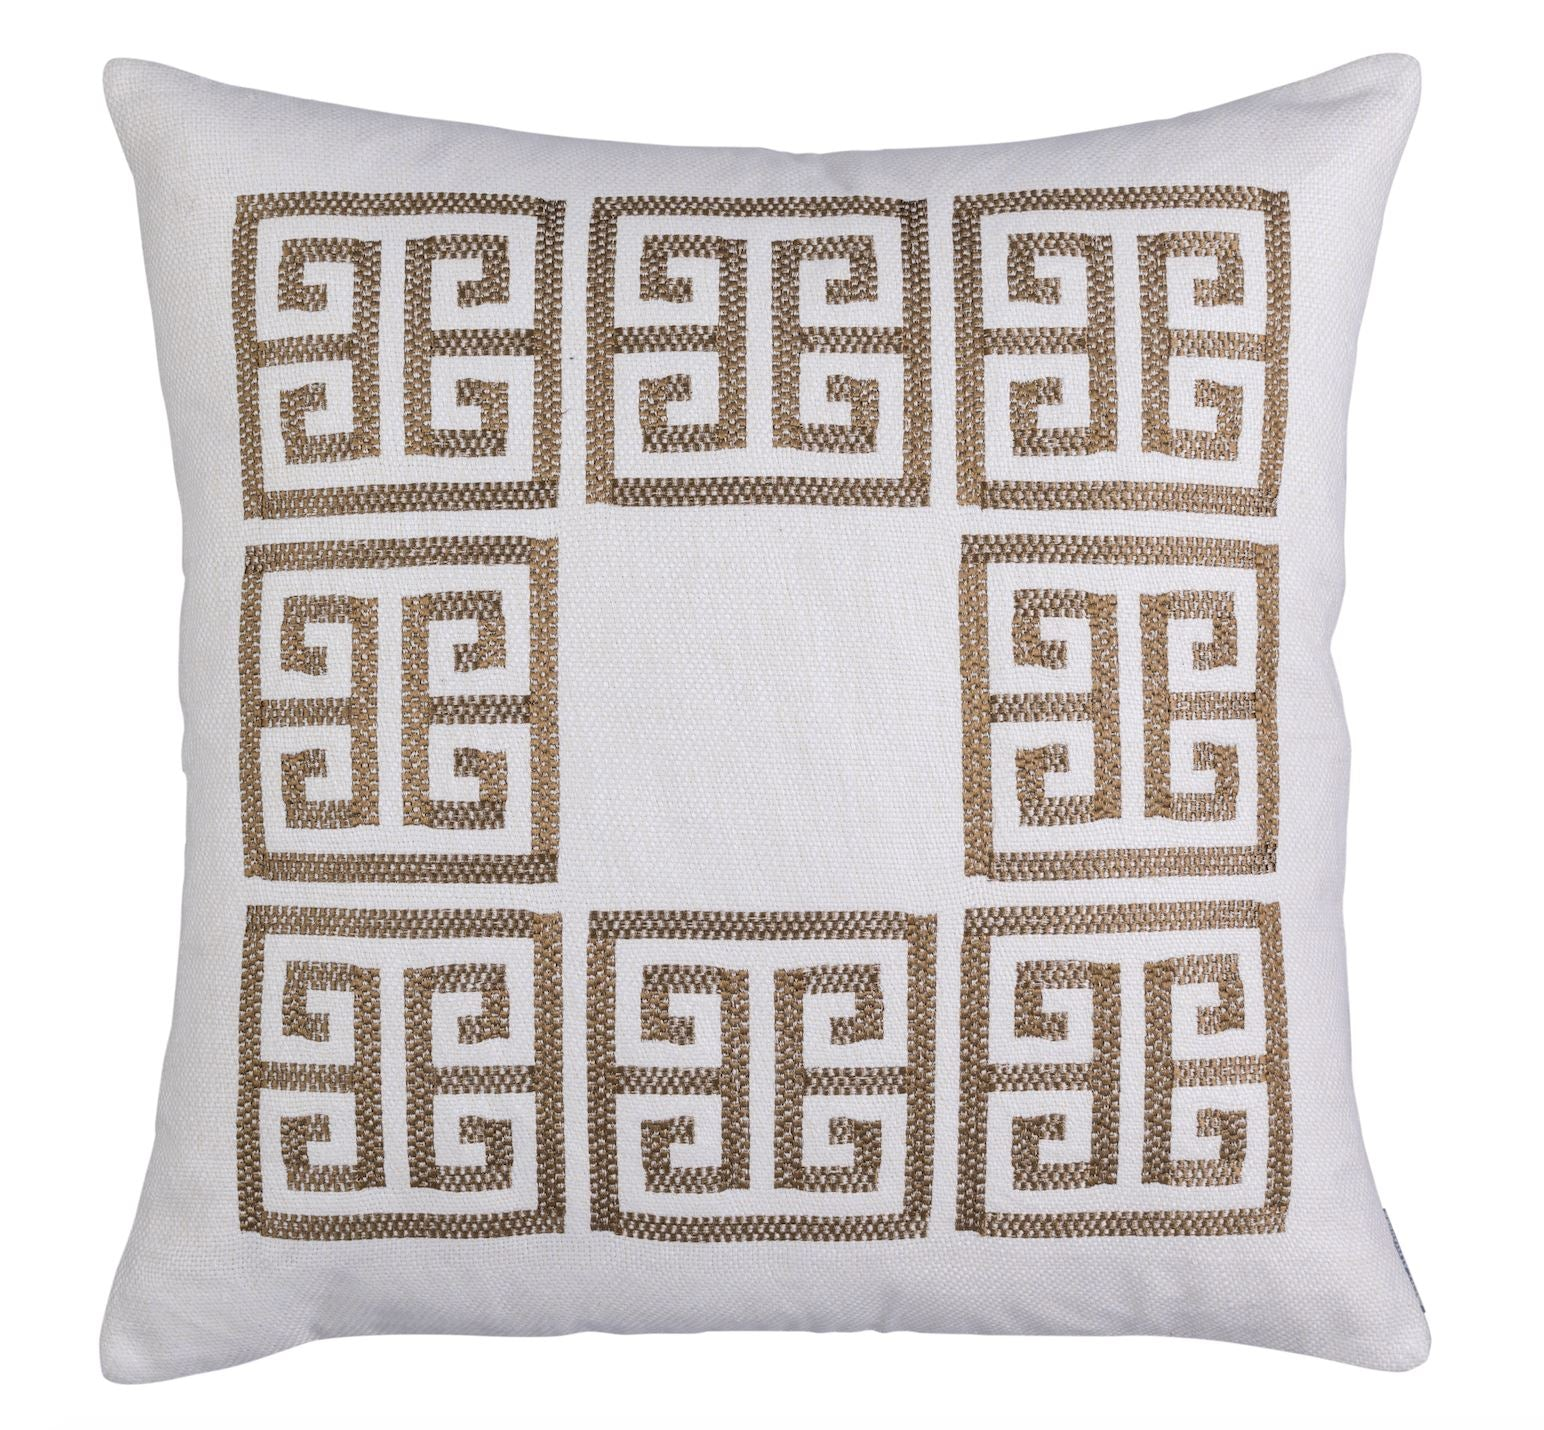 Guy Gold Square Border Pillow by Lili Alessandra